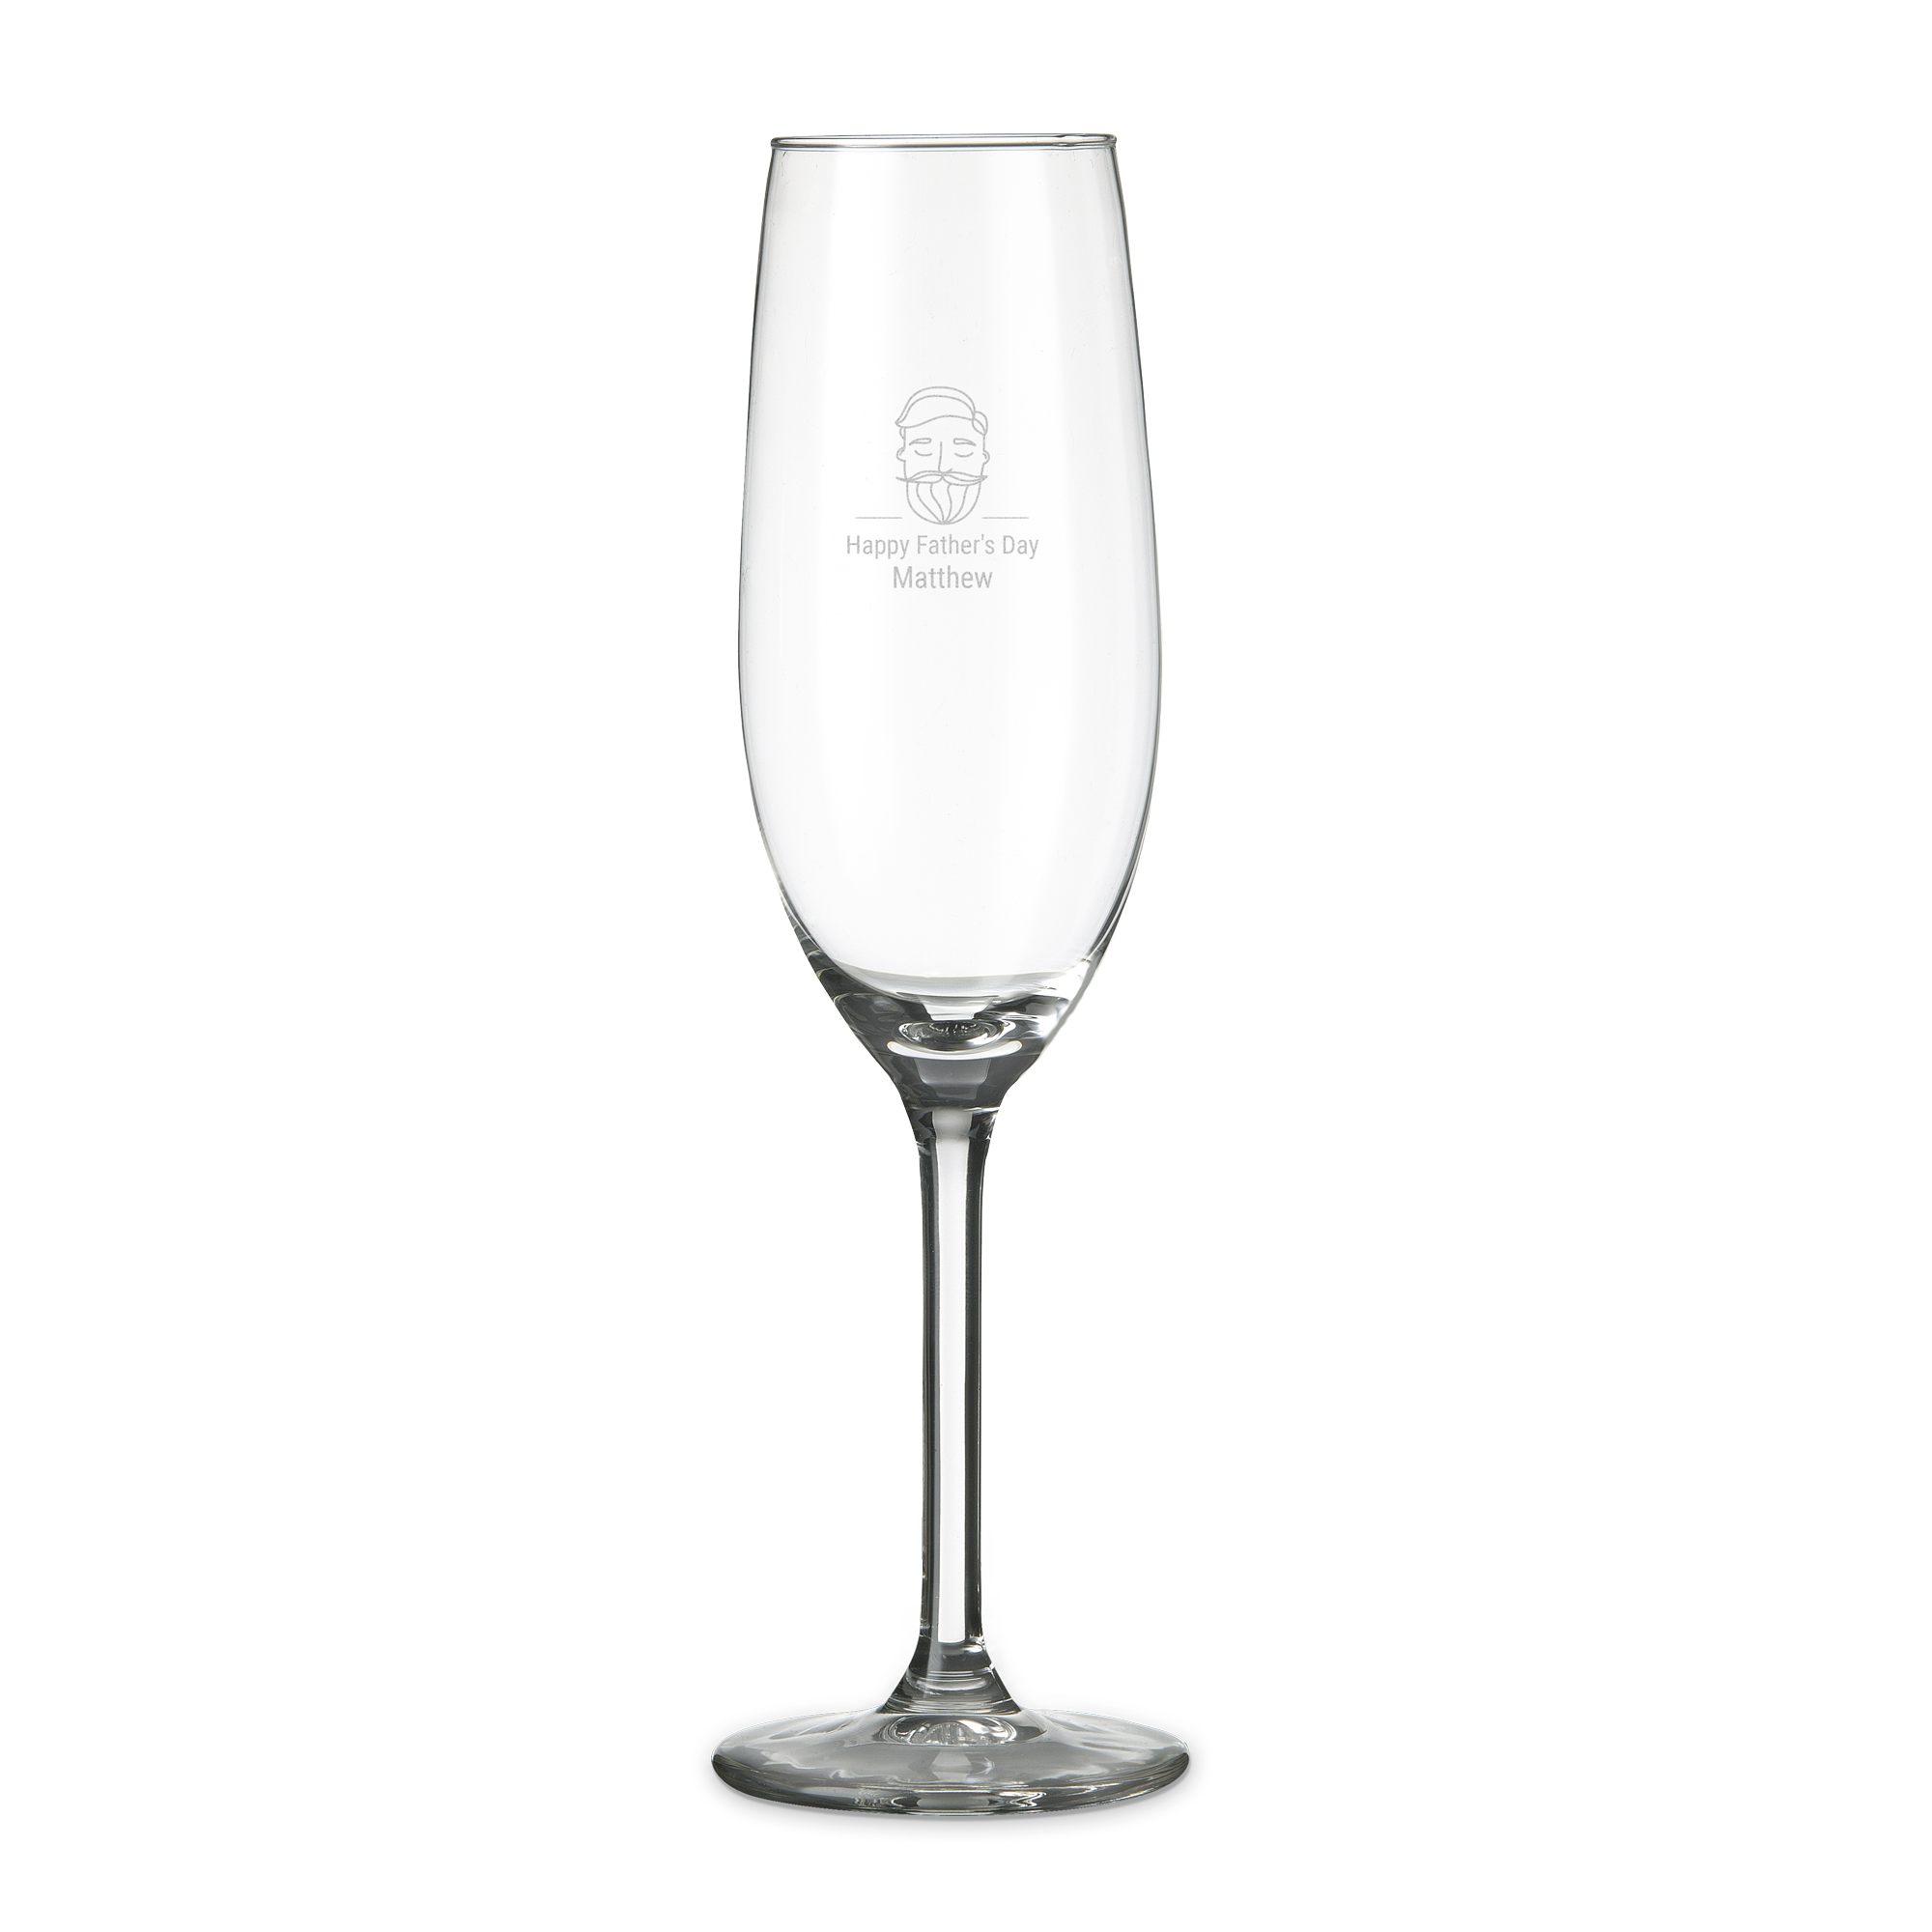 Personalised drinks glass